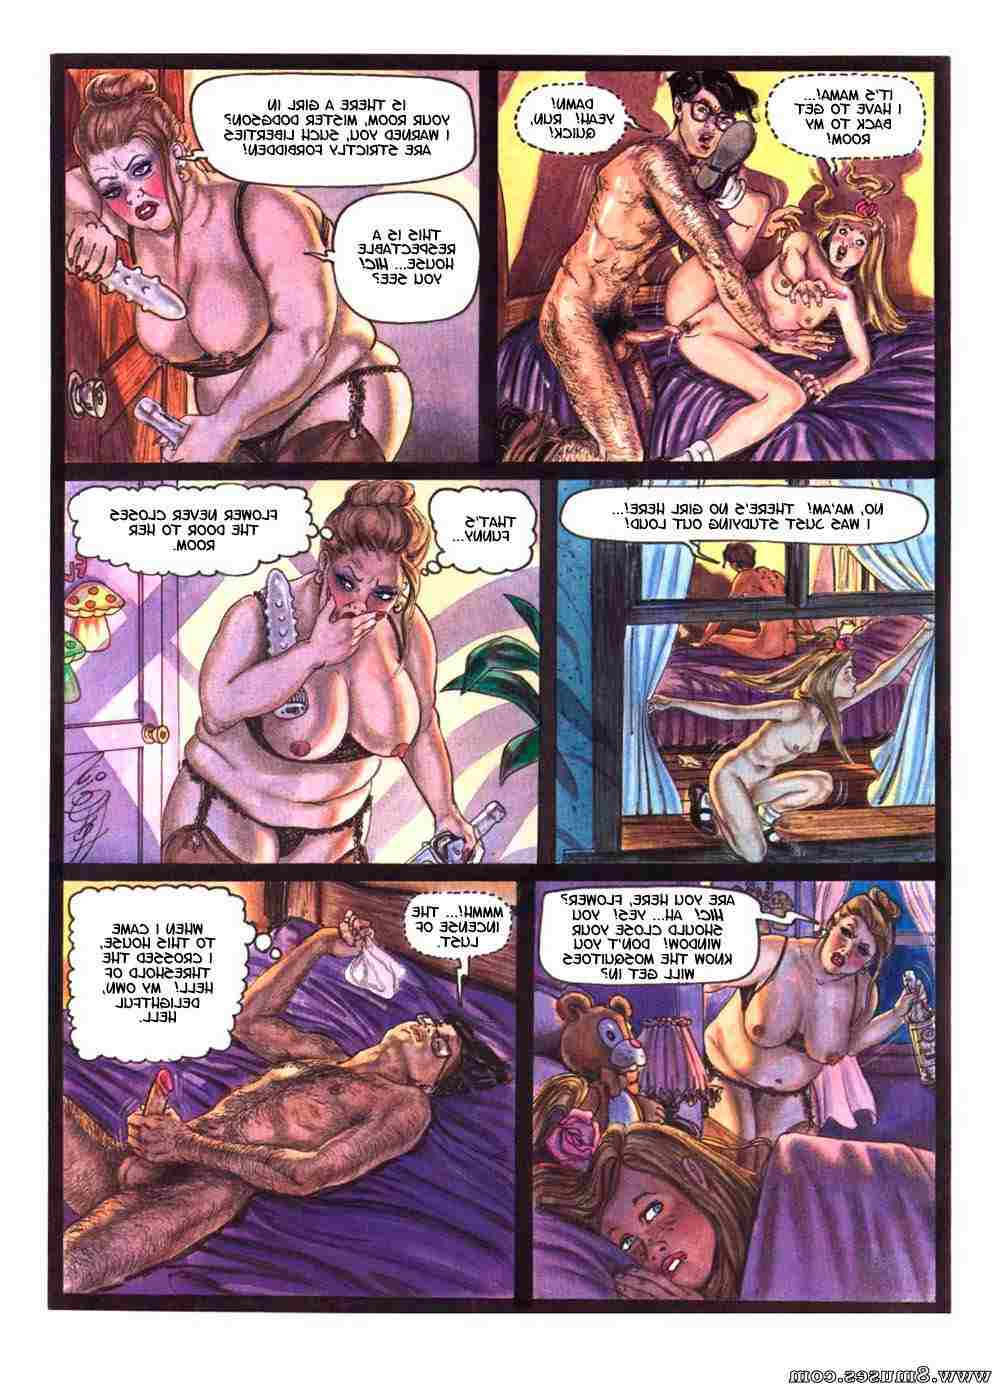 Ferocius-Comics/Forbidden-Flower Forbidden_Flower__8muses_-_Sex_and_Porn_Comics_43.jpg